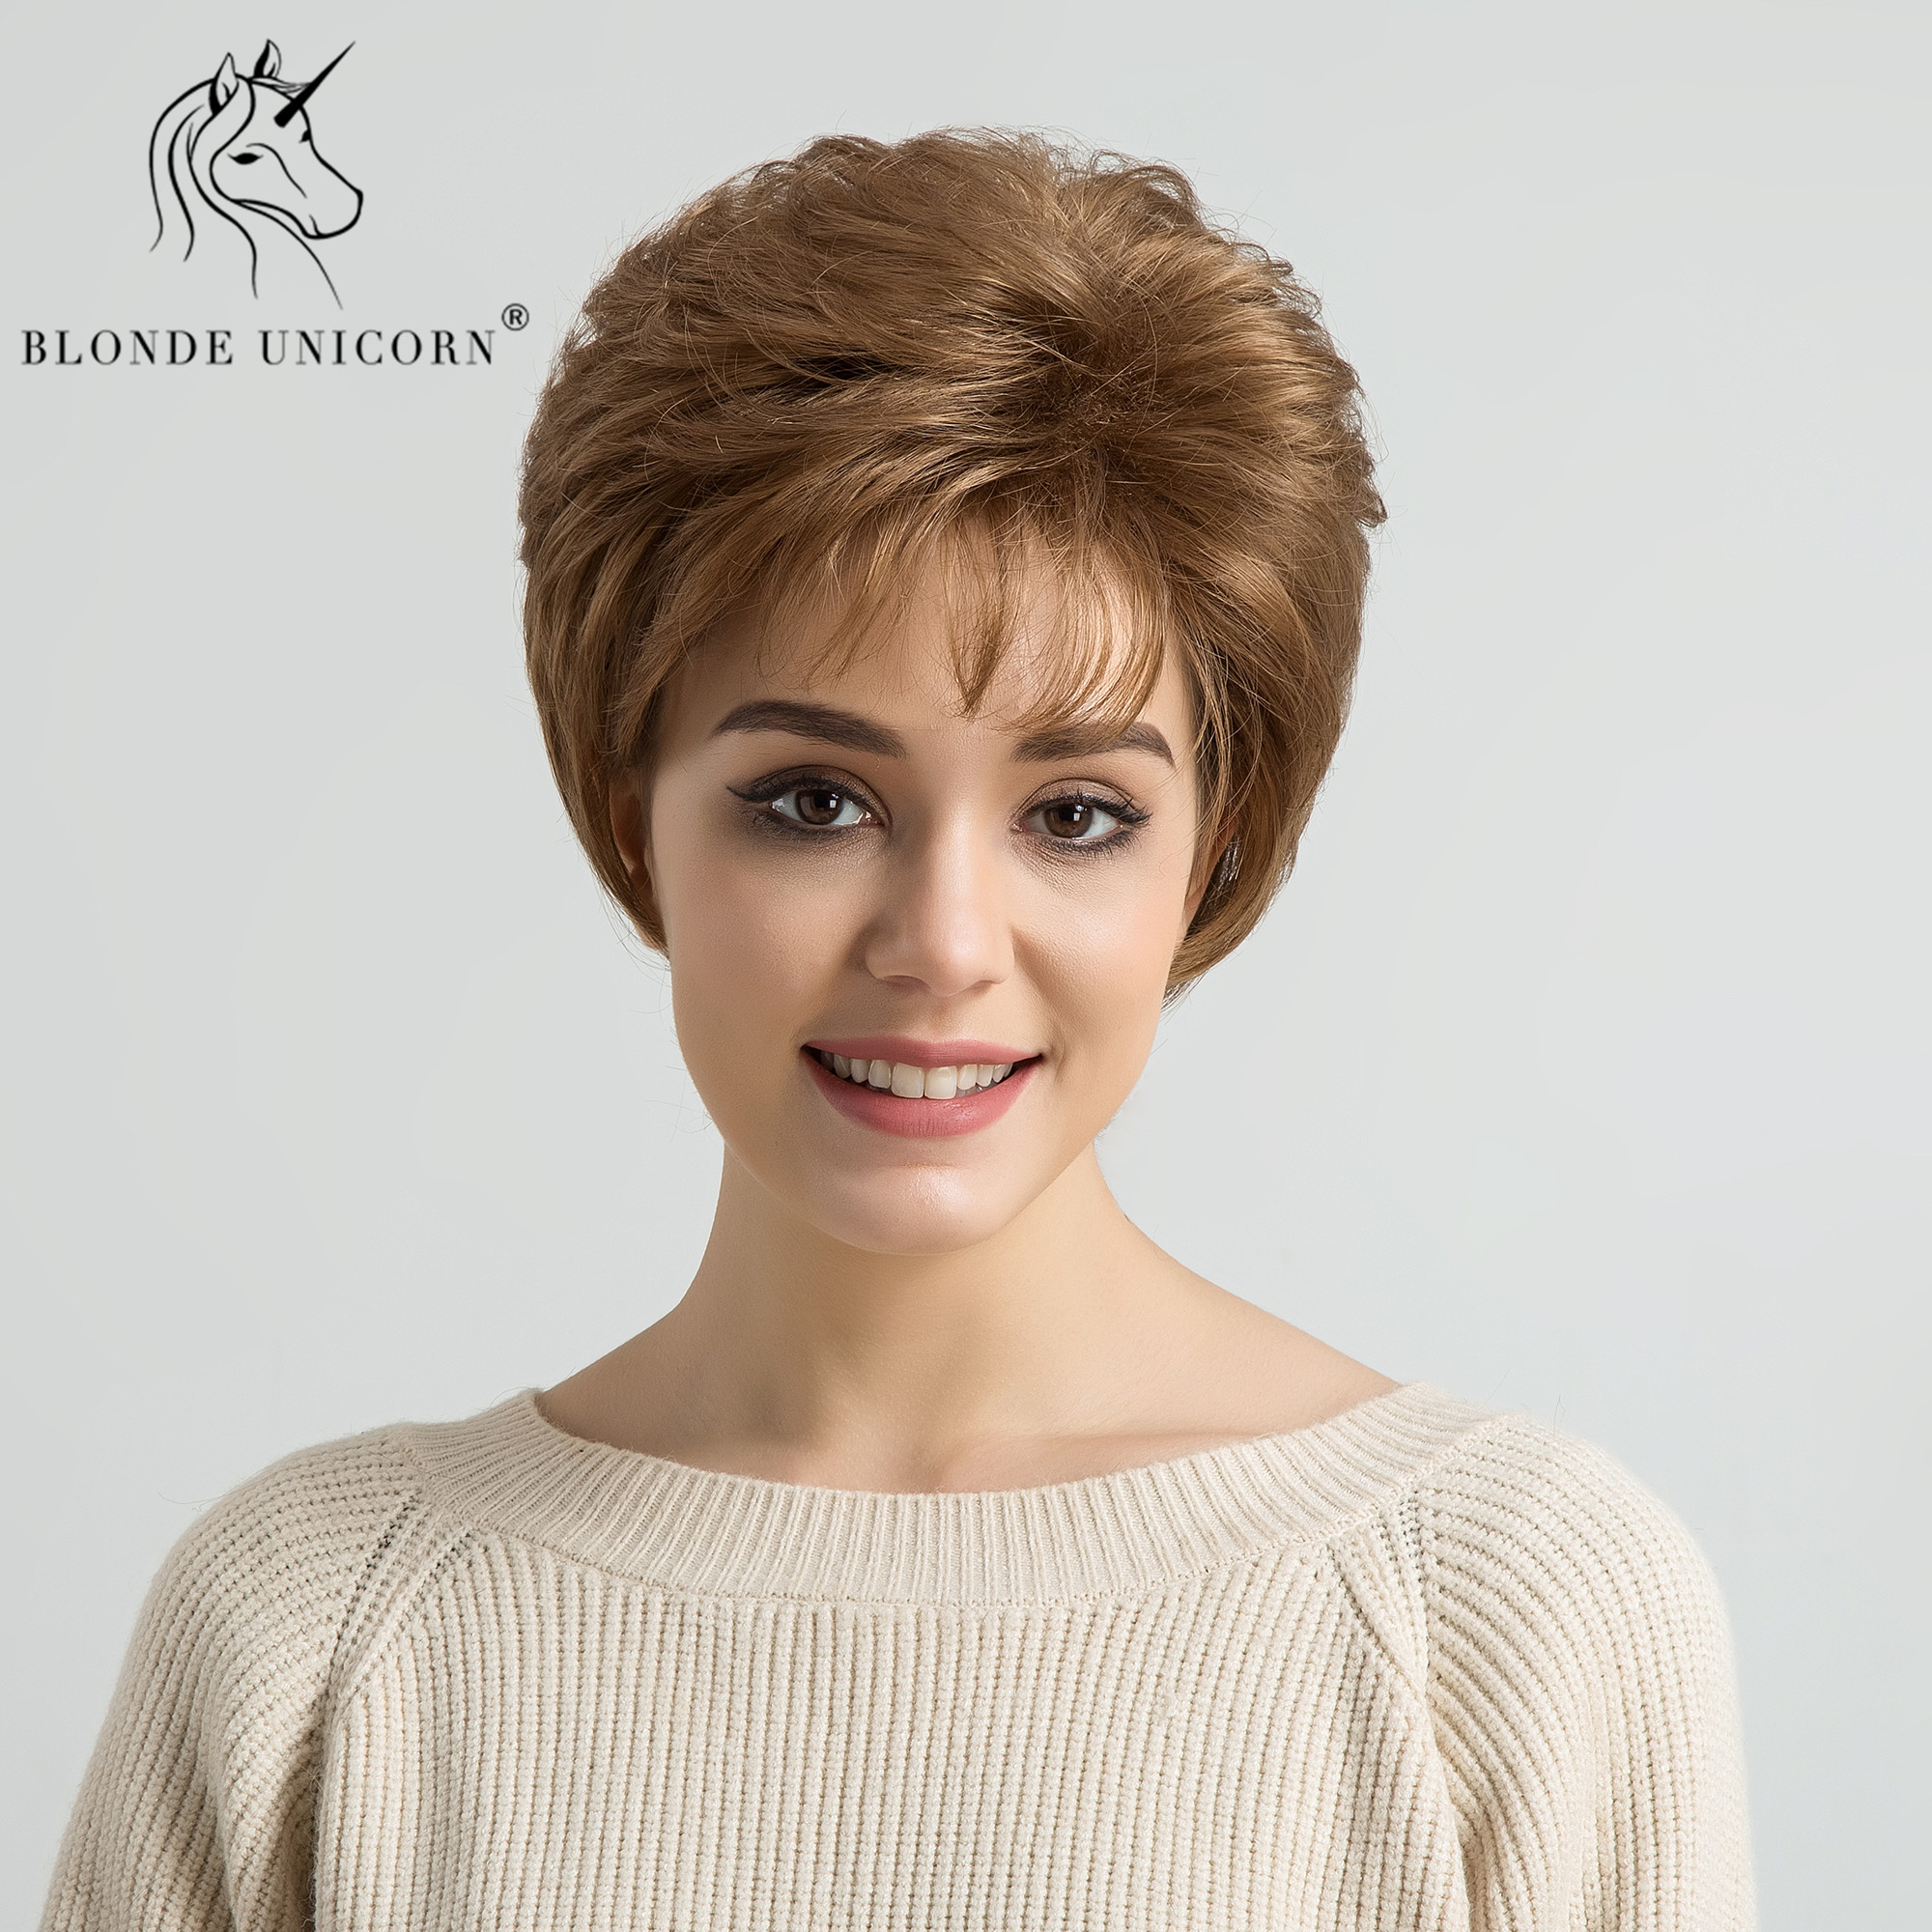 BLONDE UNICORN 8 Inch Synthetic Light Brown Short Straight Women Wig with Side Fringes Brown High Temperature Fiber Mother Wig